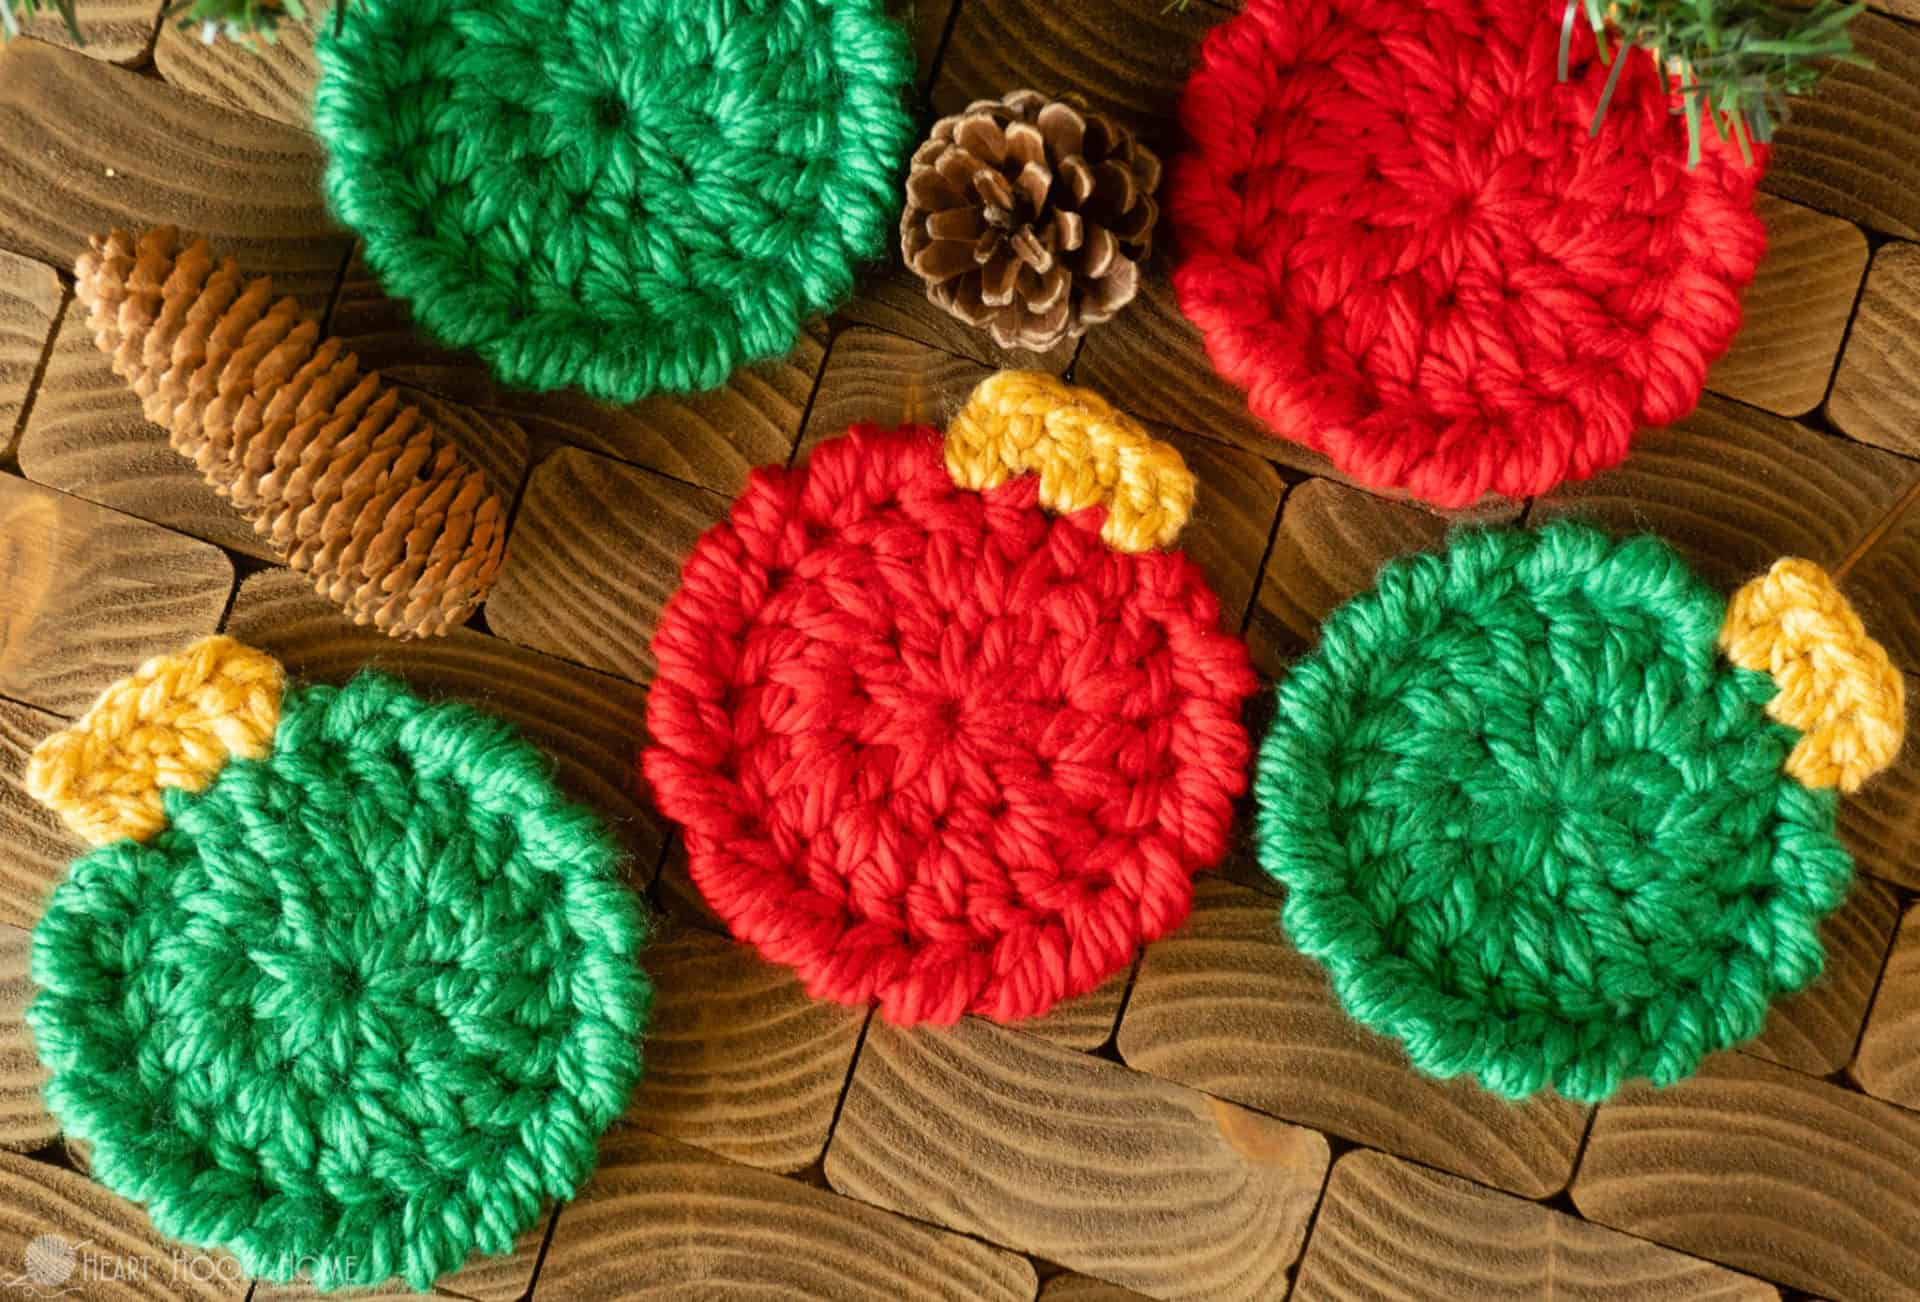 Christmas Ornament Coasters - Free Crochet Pattern